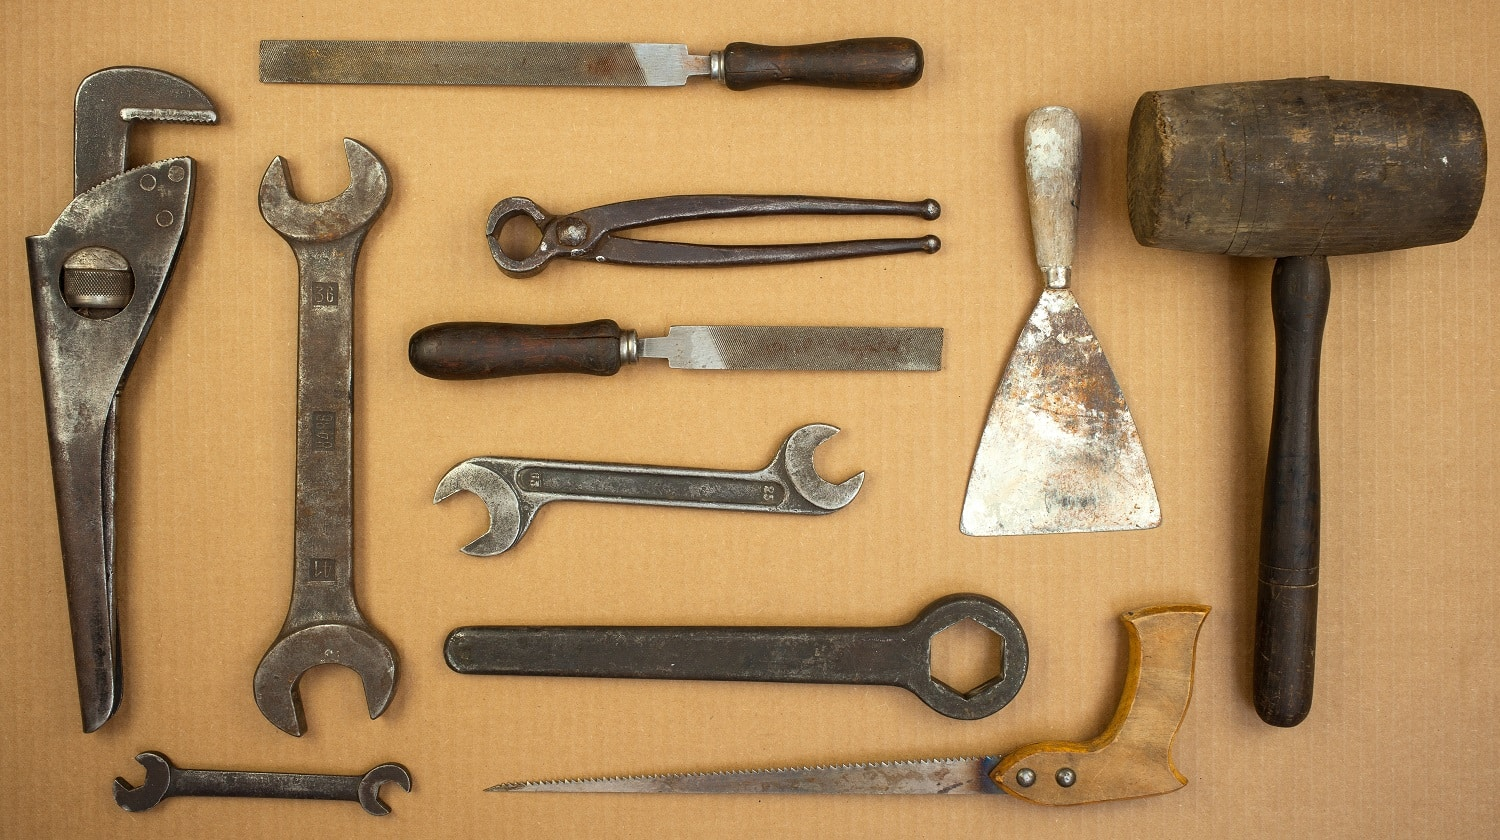 View of old set tools. Hammer, putty, knife, pliers, saw, file, wrench